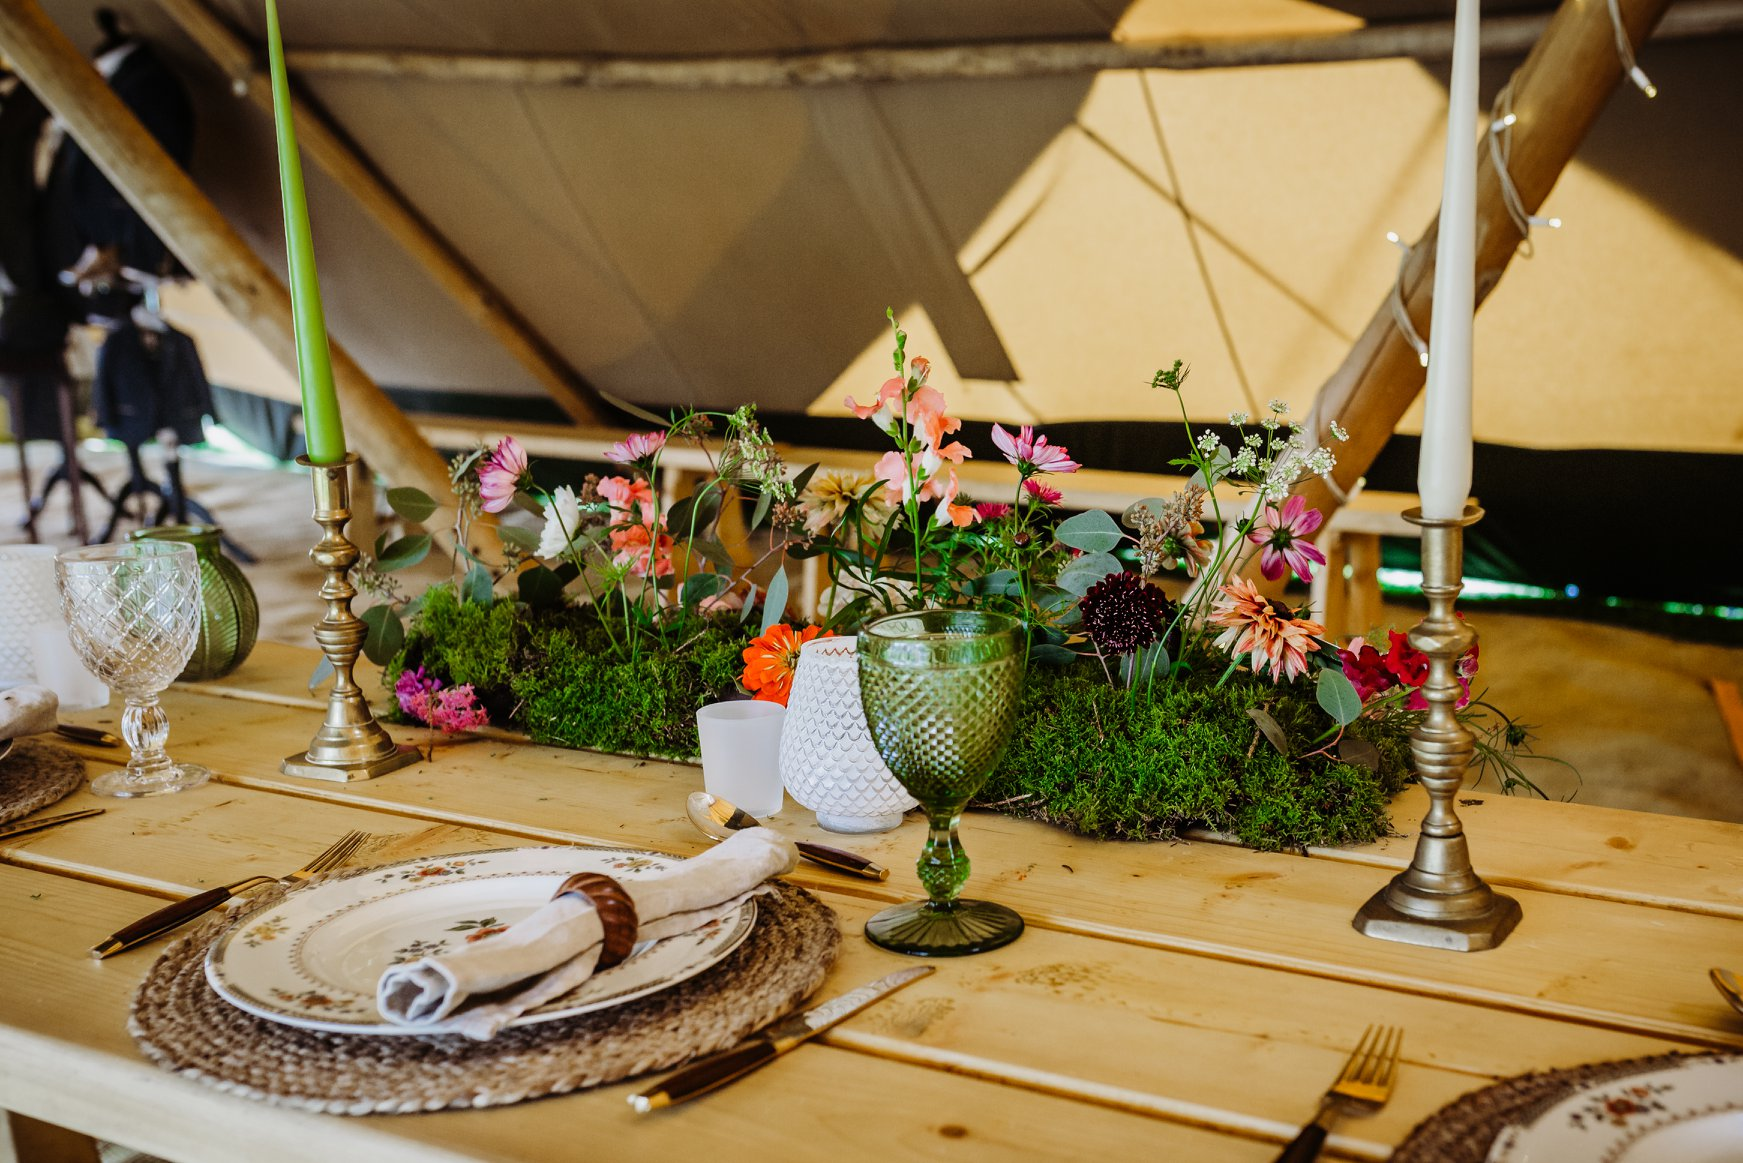 Wild flower garden centre piece by The Lily Pad Florist, grown by Pancake Hill Flowers, with charming rustic place setting